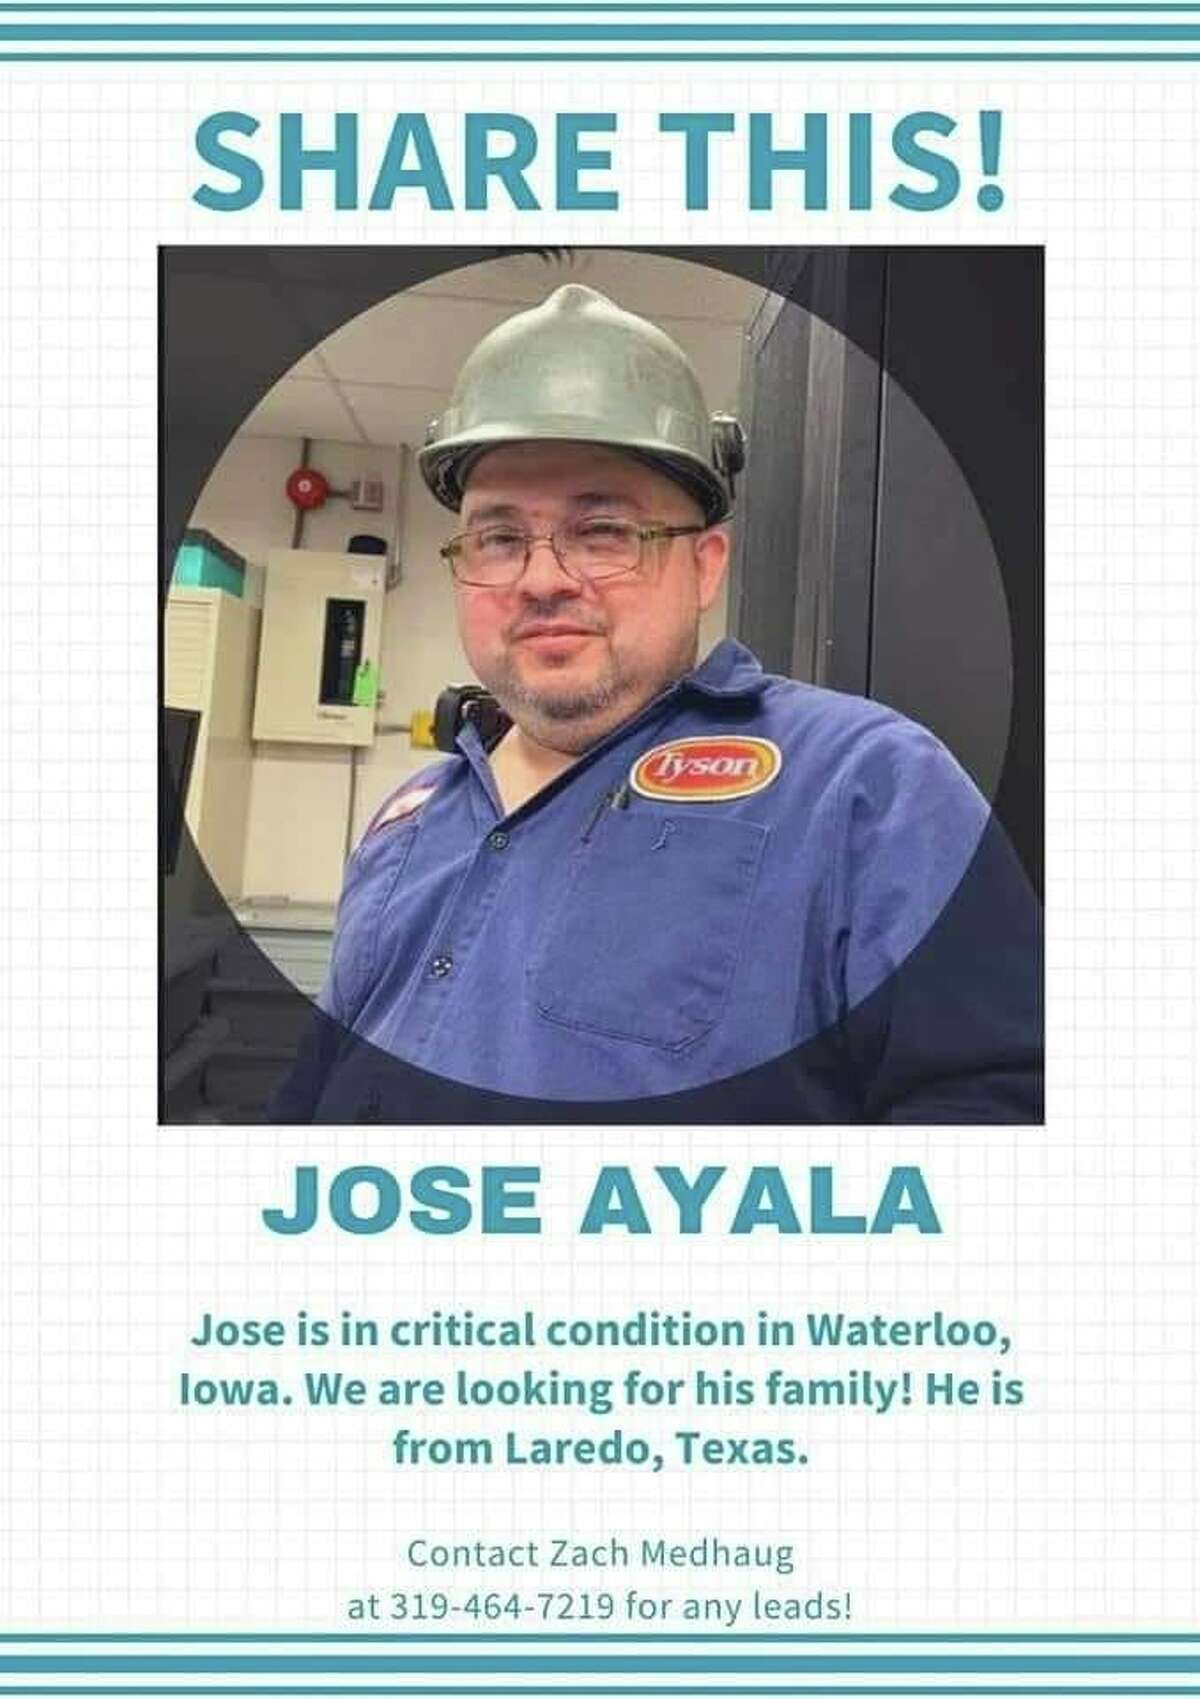 Photos on Facebook show Laredo's Jose Ayala, who is currently in critical condition in an Iowa hospital with COVID-related symptoms.